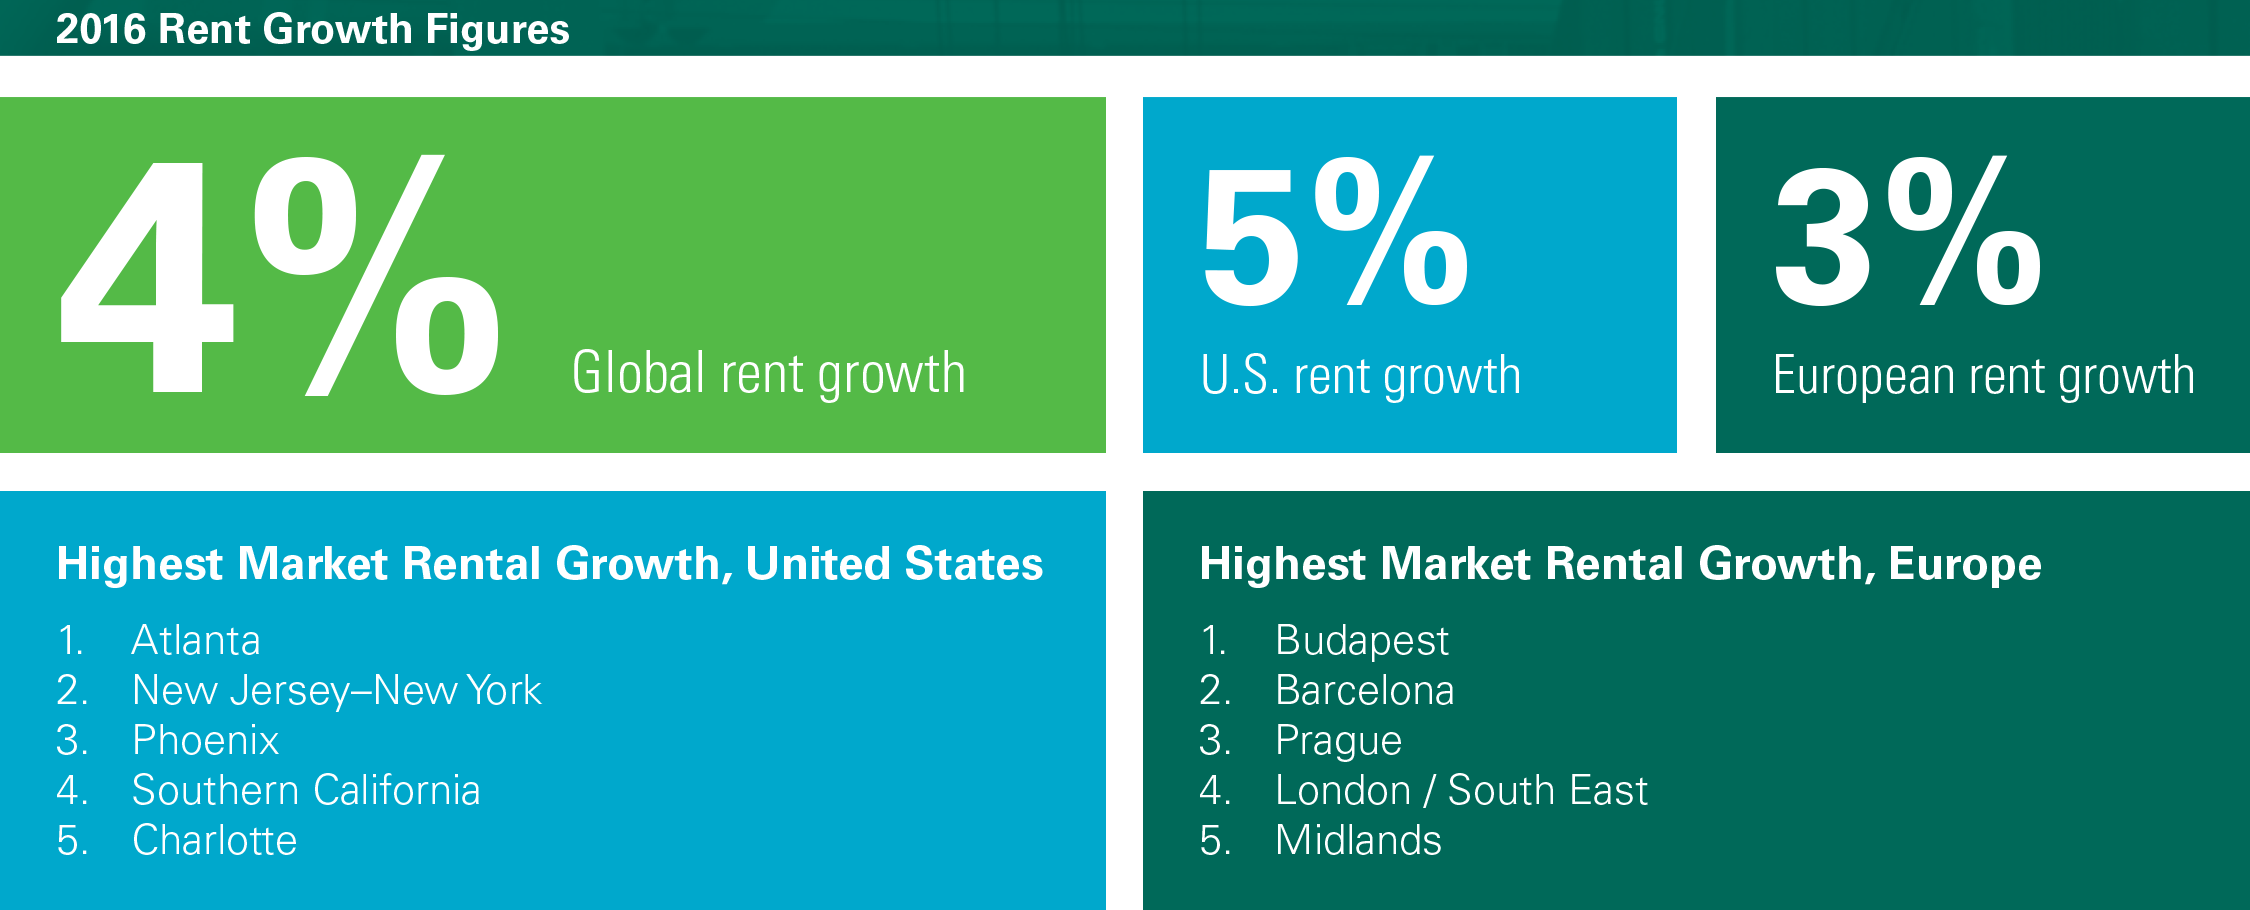 2016 Rent Growth Figures